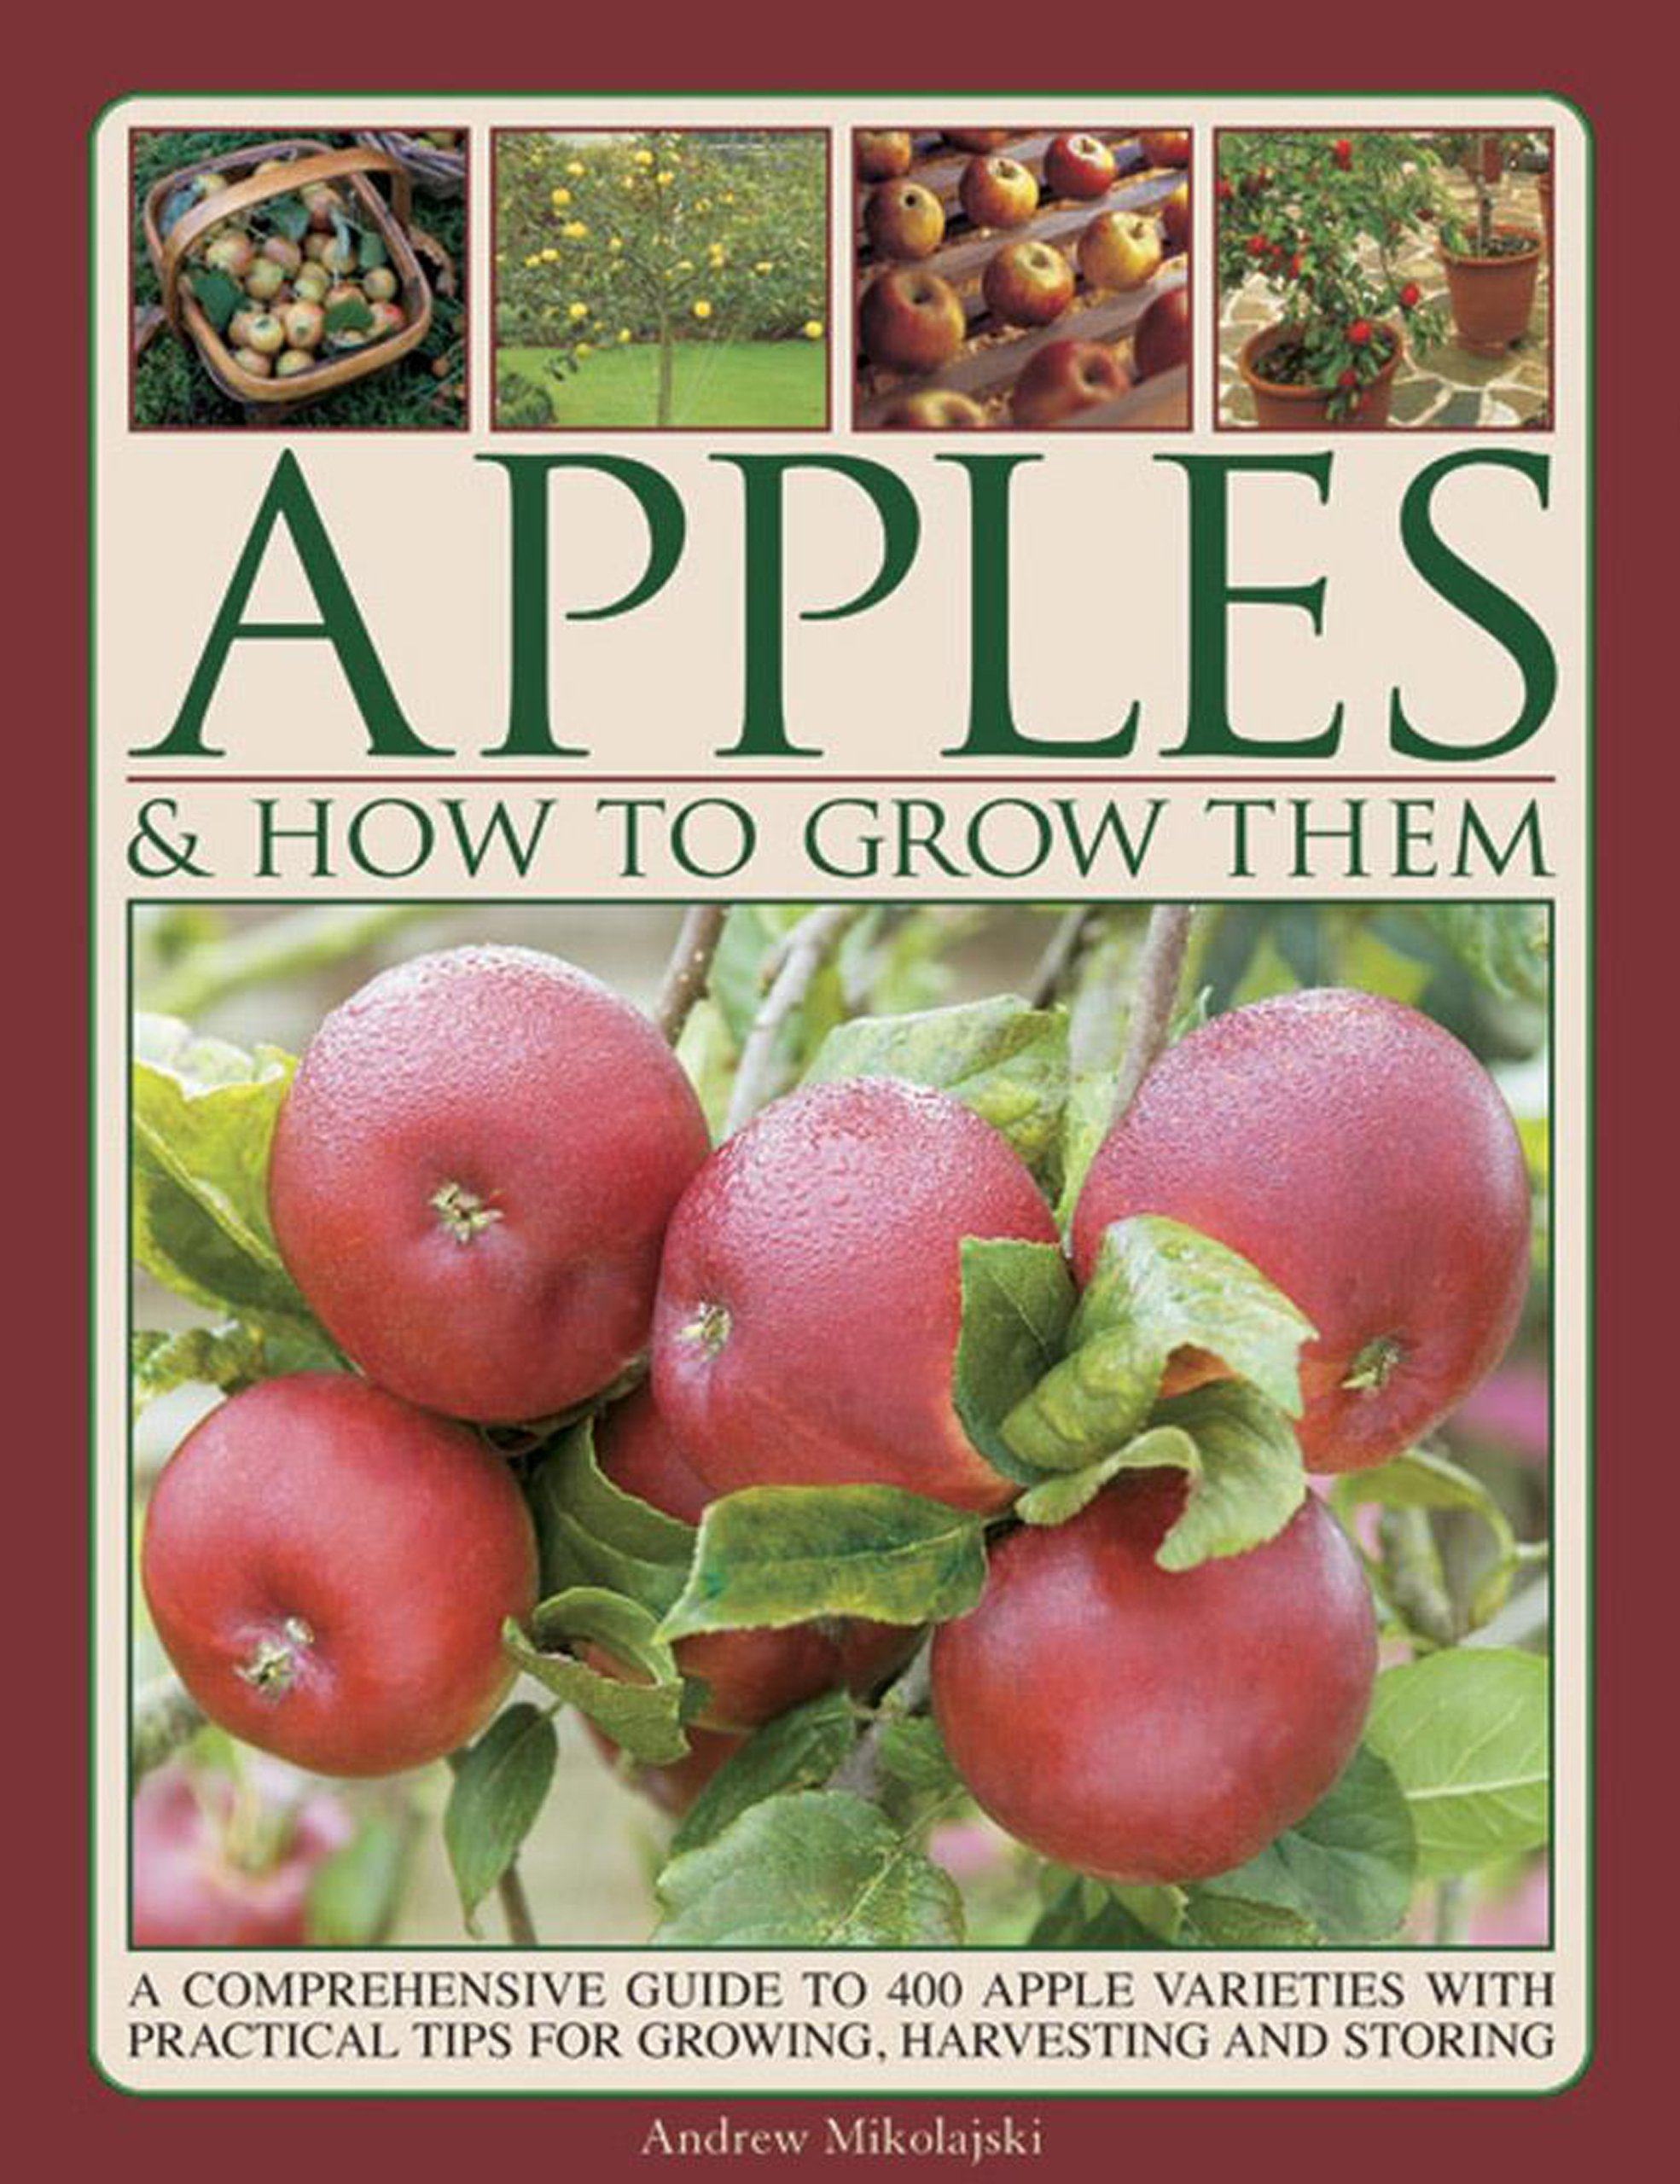 Download Apples & How to Grow Them: A Comprehensive Guide To 400 Apple Varieties With Practical Tips For Growing, Harvesting And Storing ebook